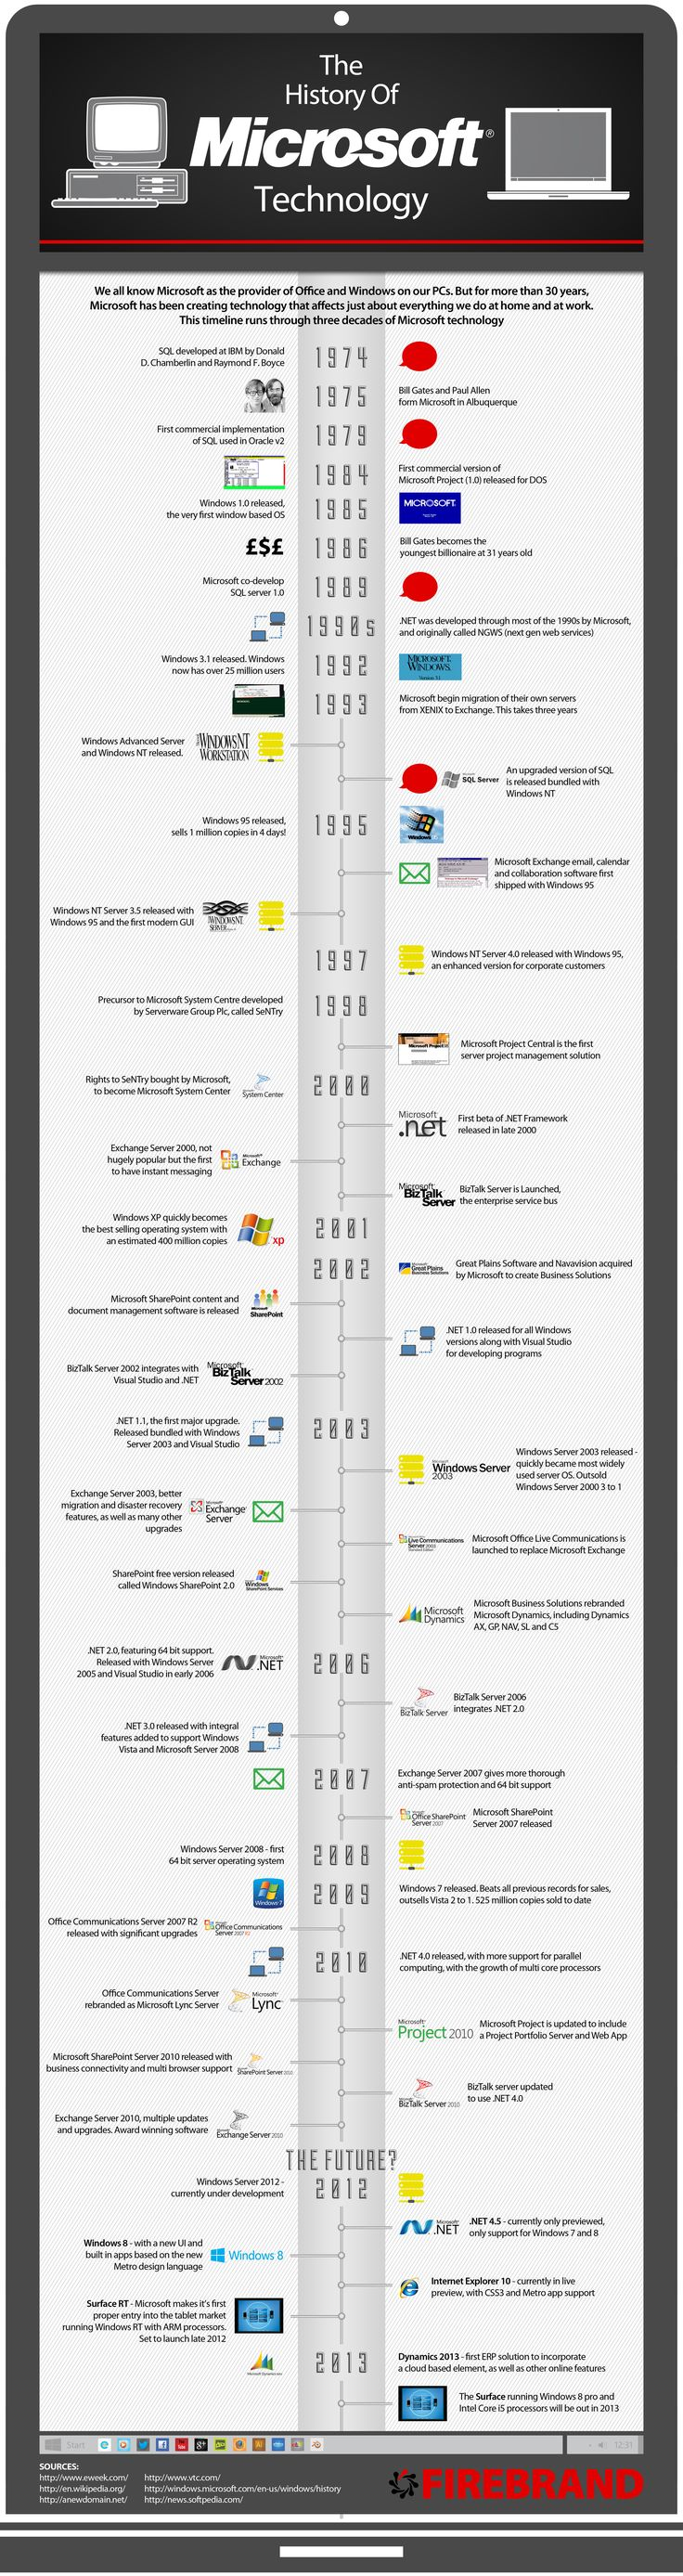 The history of Microsoft technology #infographic